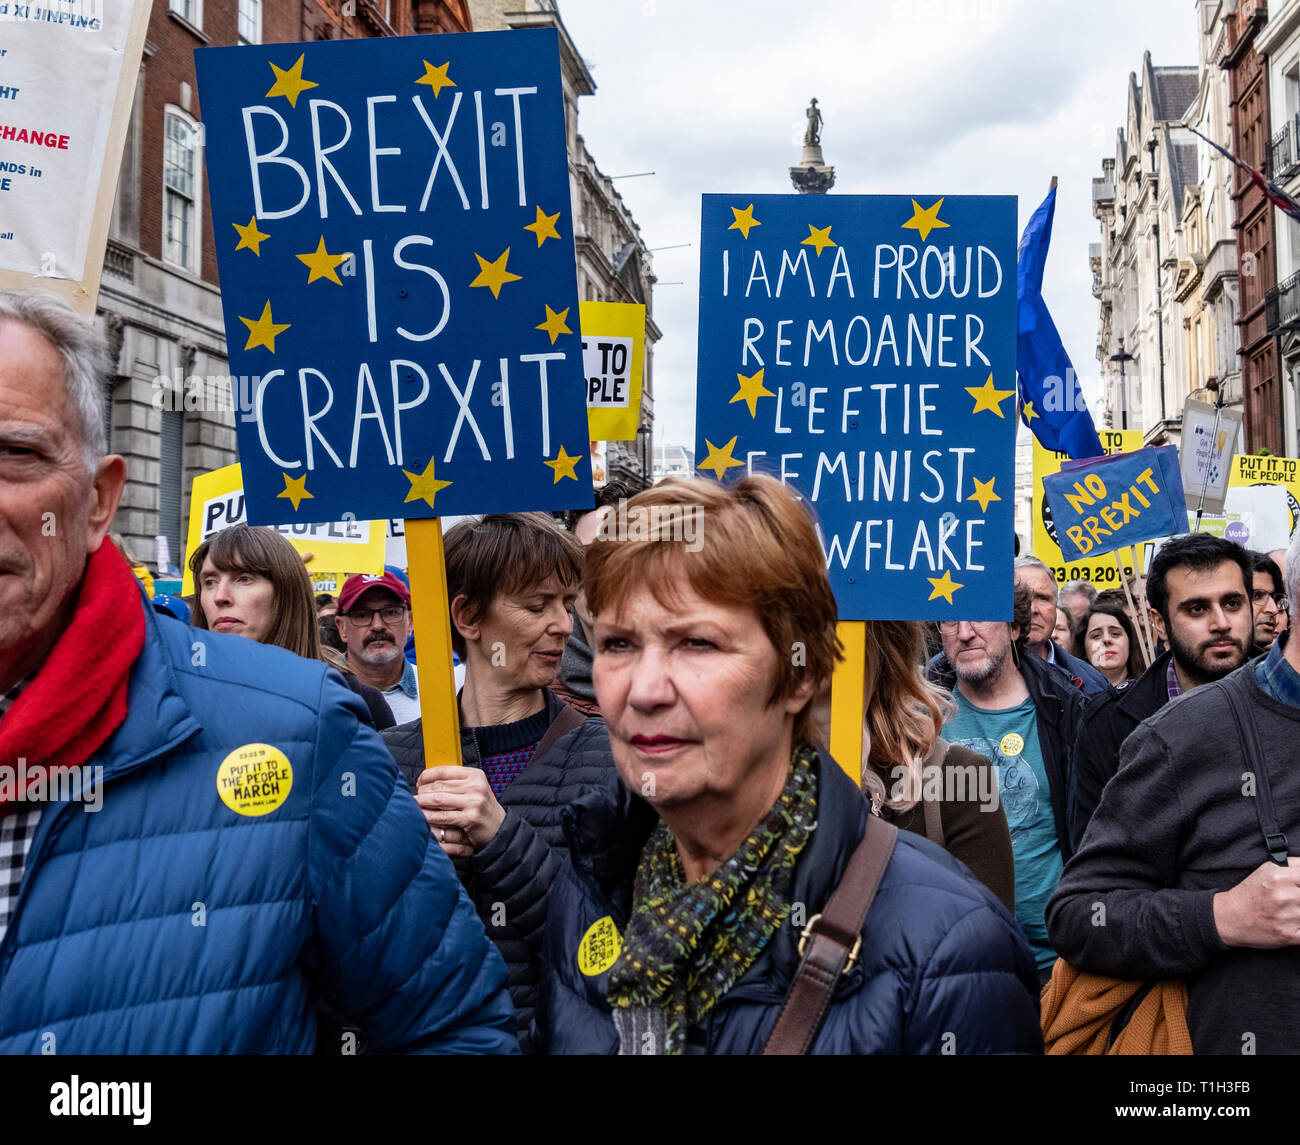 One million people marched through London on Peoples Vote anti-Brexit  protest 23 March 2019 - Stock Image